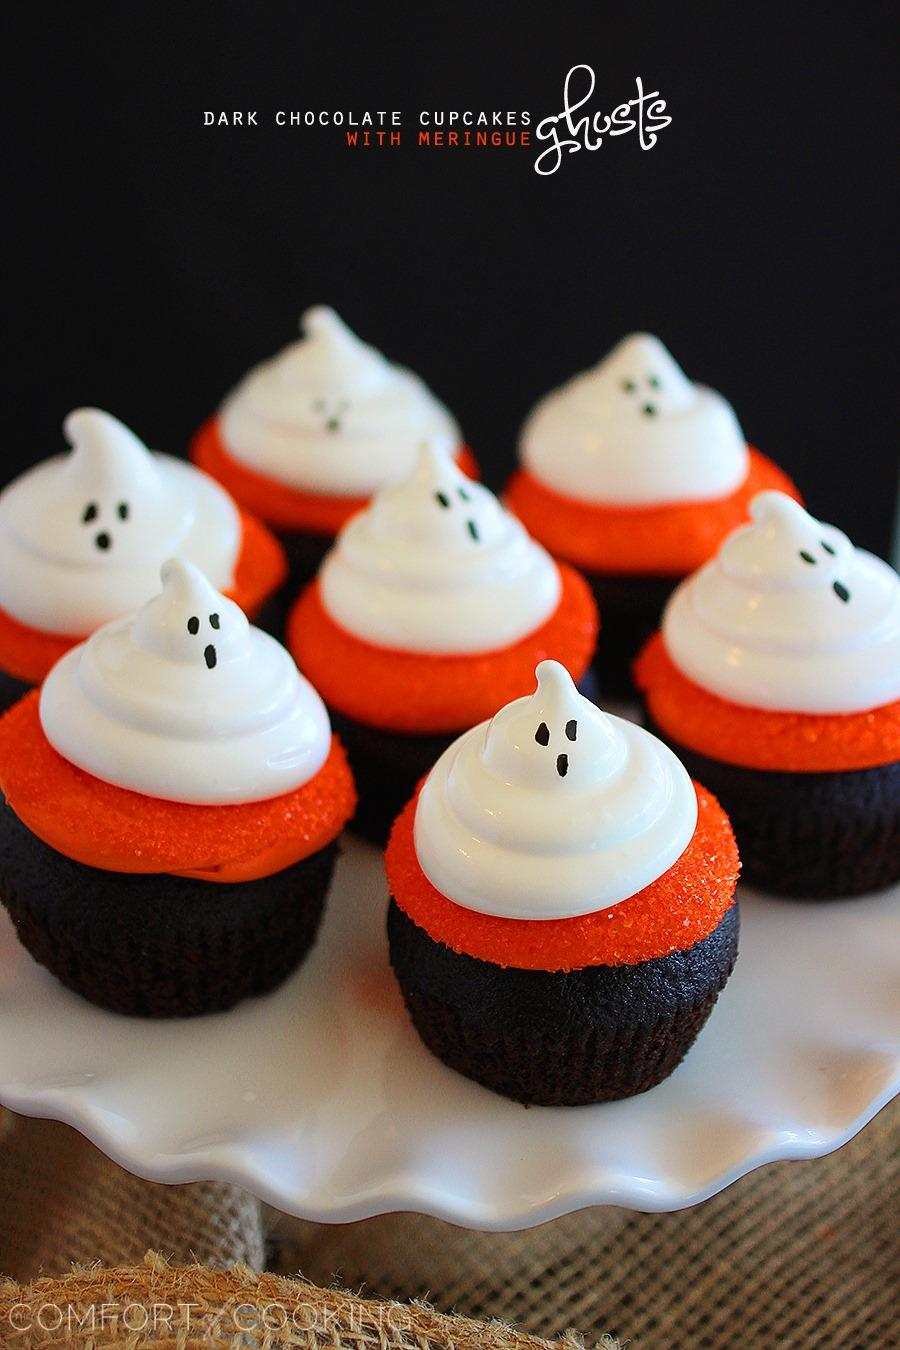 Dark Chocolate Cupcakes with Meringue Ghosts – Decadent dark chocolate cupcakes with fluffy meringue ghosts make for a scrumptious, spooky Halloween treat!   thecomfortofcooking.com